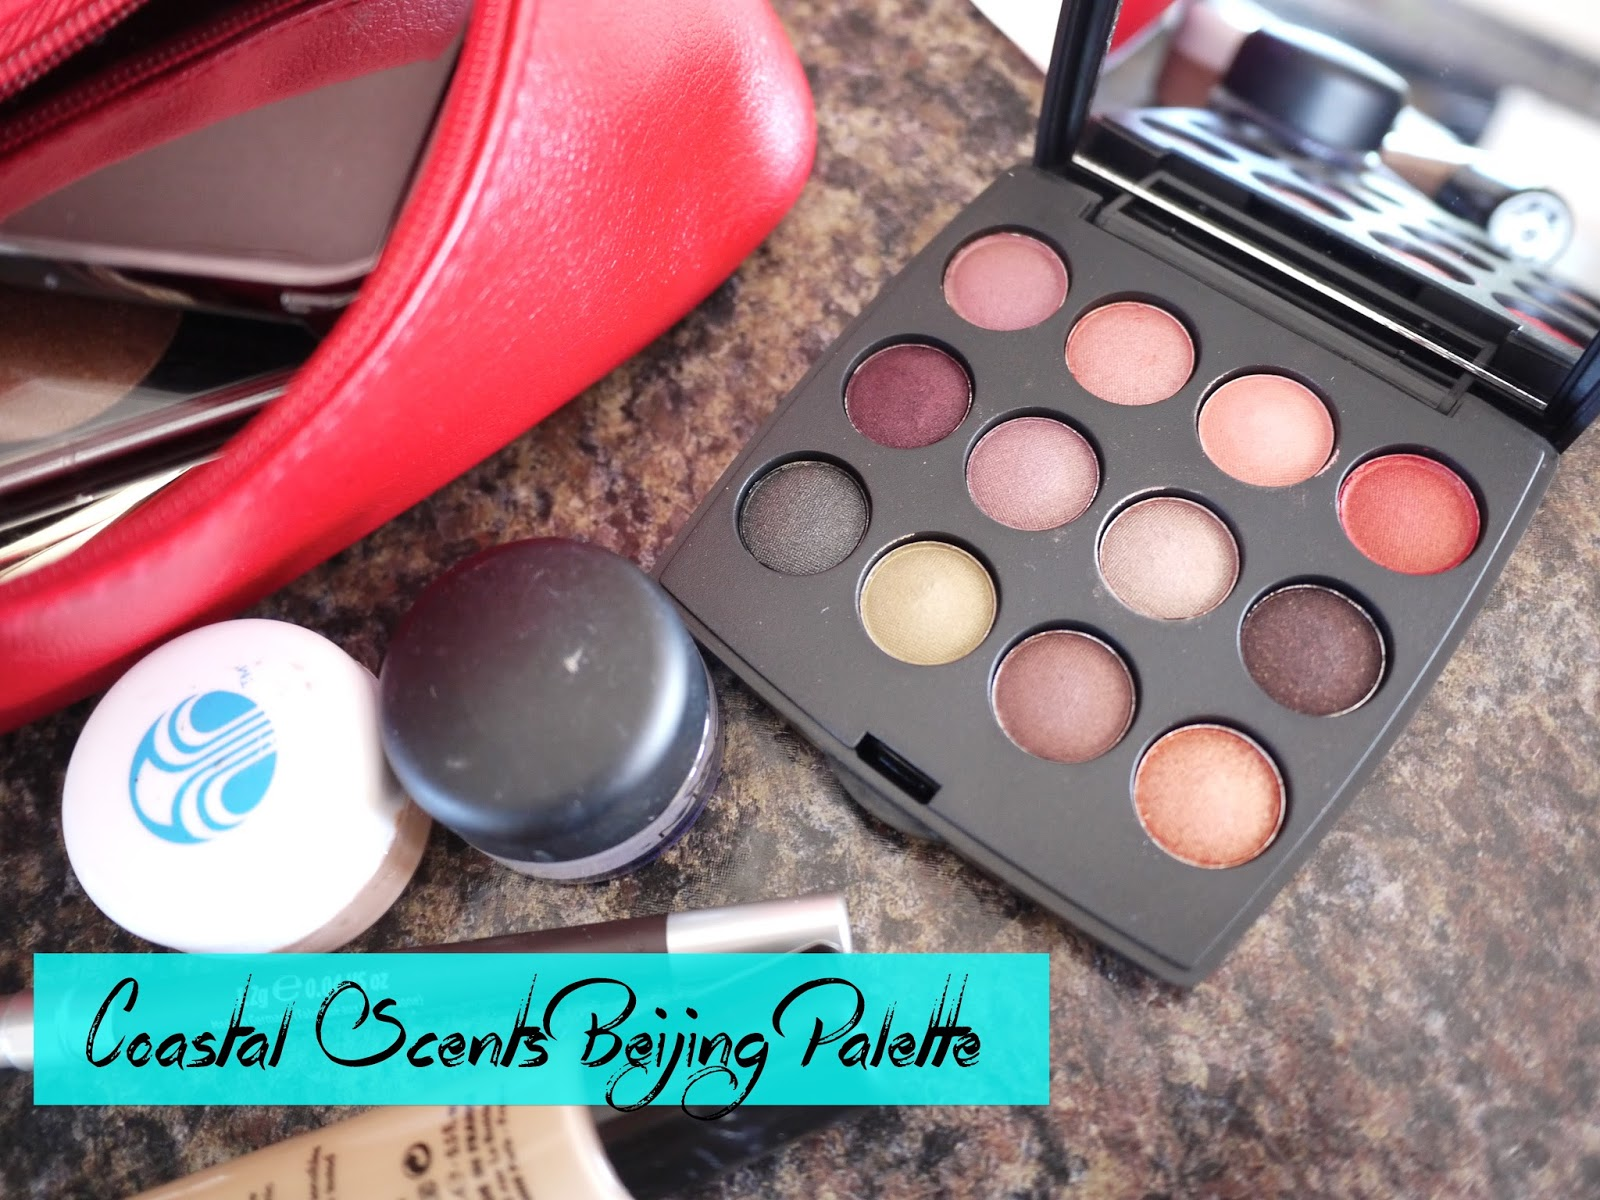 Coastal Scents Beijing Palette review